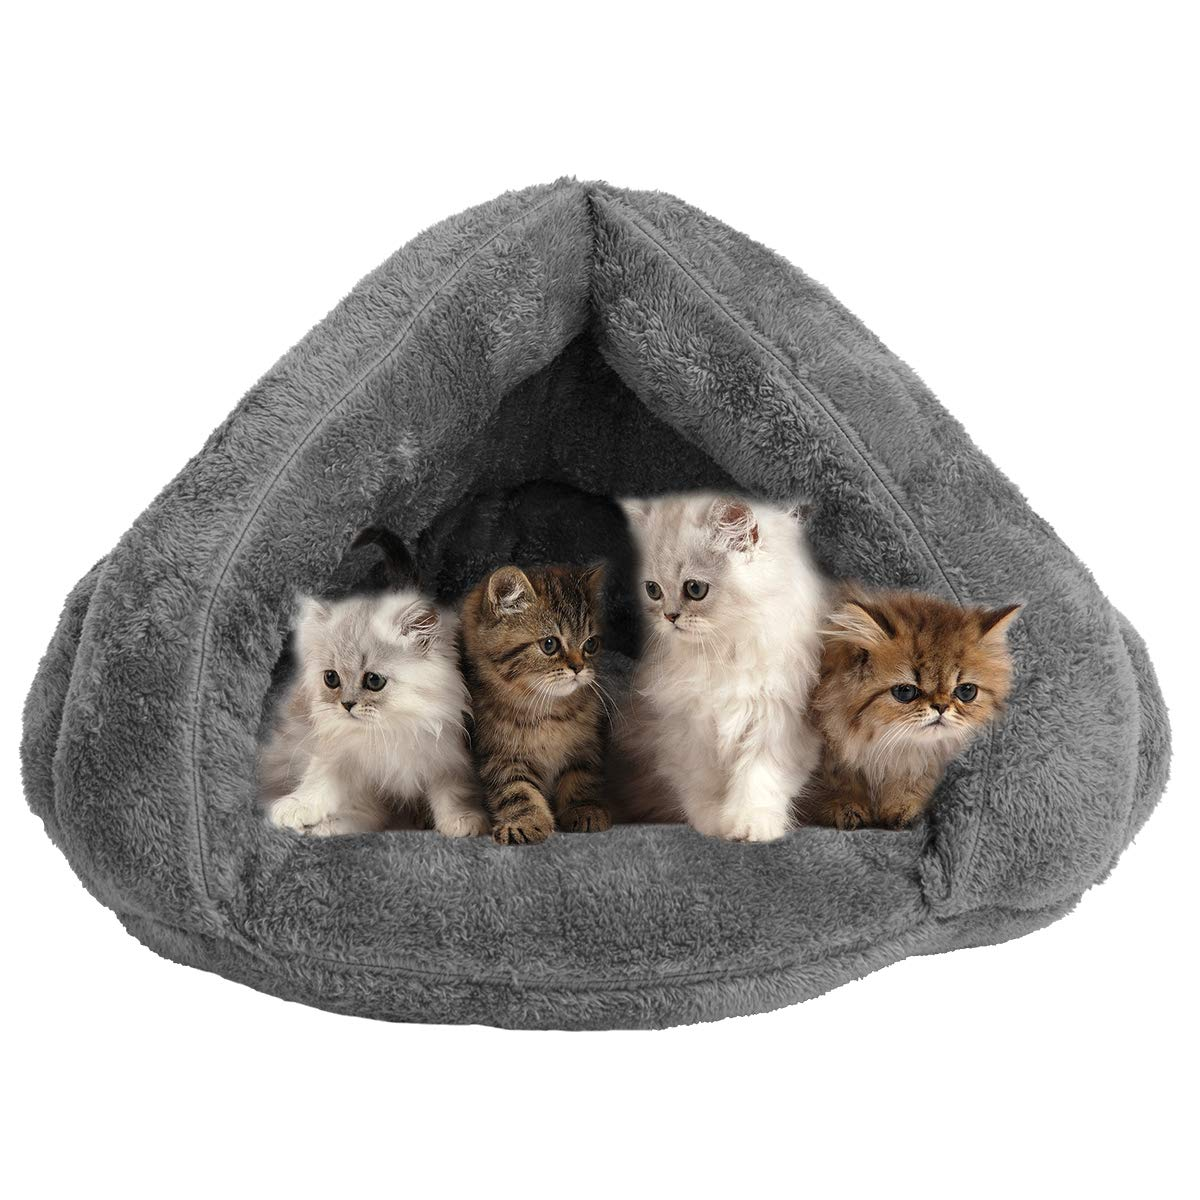 Grey One Size Grey One Size VeMee Plush Cat Sleep Bag Cozy Pet Cave Bed Covered Pet Beds Cave for Cat Small Dogs and Puppies Winter Pets Indoor Triangle Nest